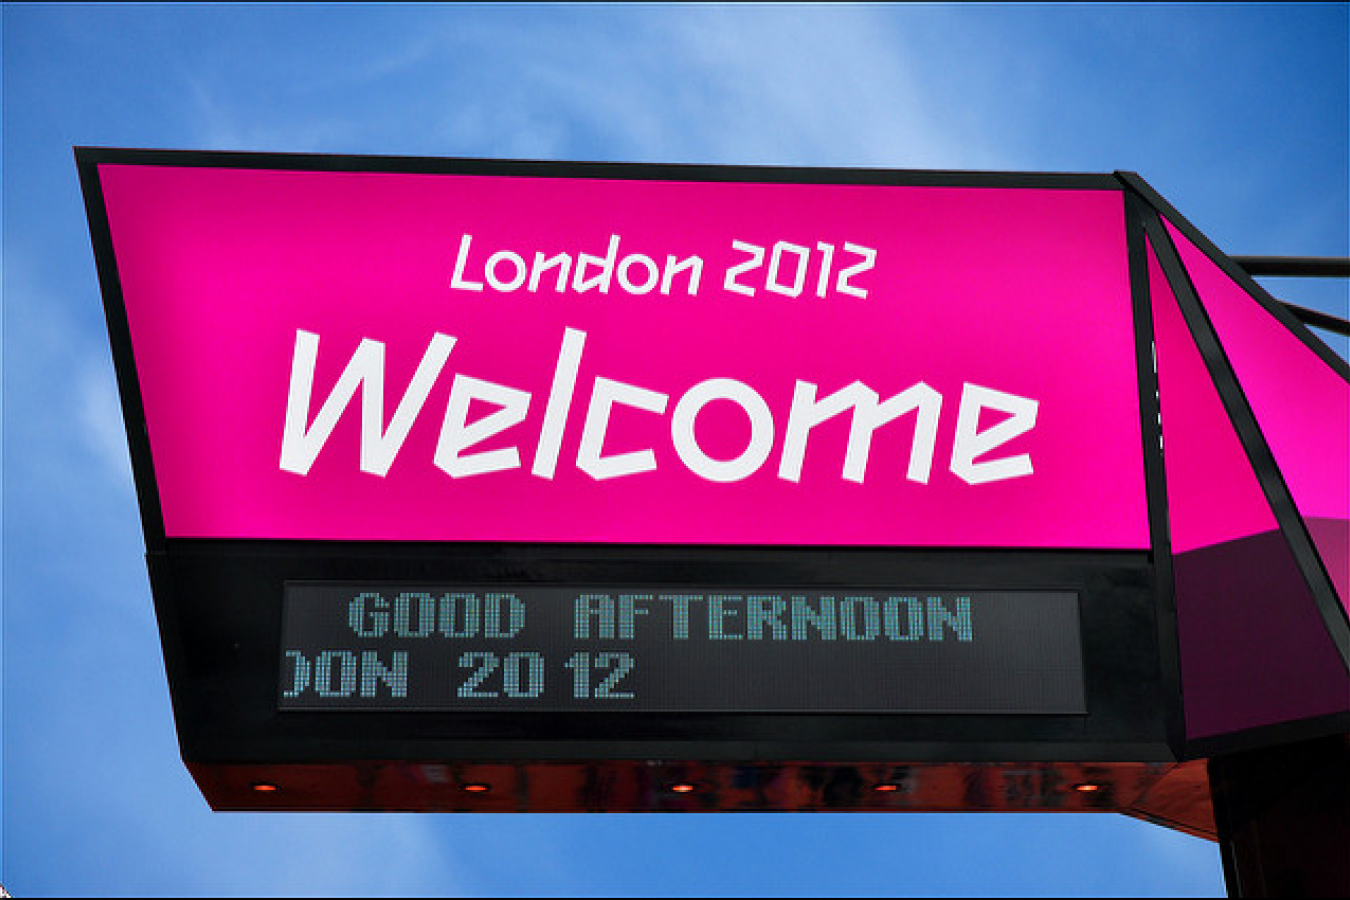 Olympic Park / Welcome